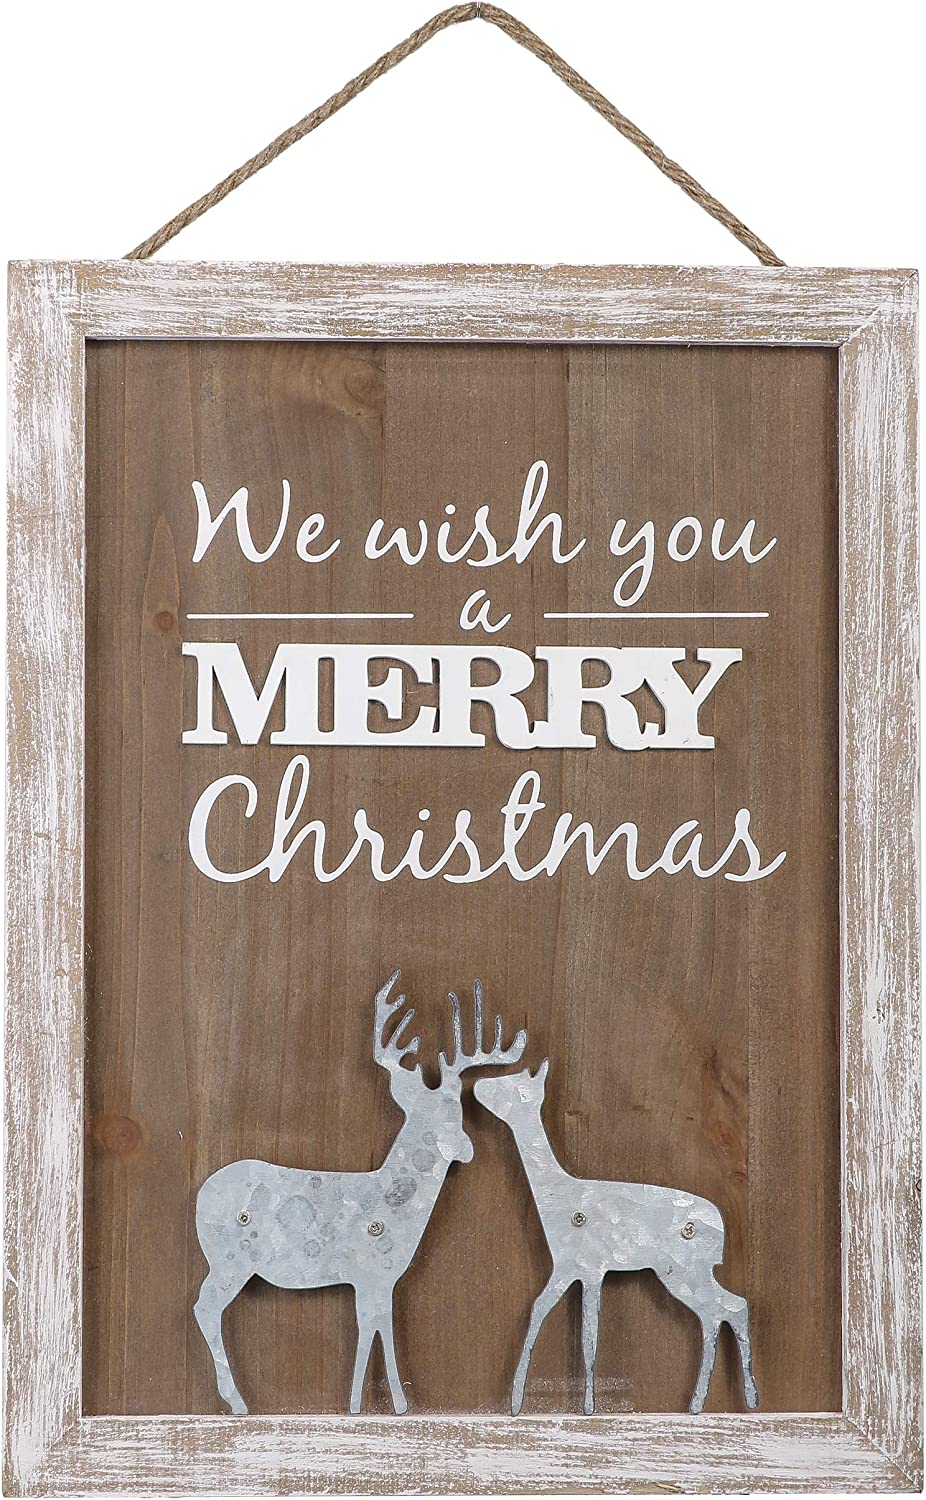 Valery Madelyn 16x12 inch Merry Christmas Wood Signs,Household Rustic Wooden Plaques,Decorative Hanging Wooden Sign Wall&Door Decor Art for Holiday Decoration